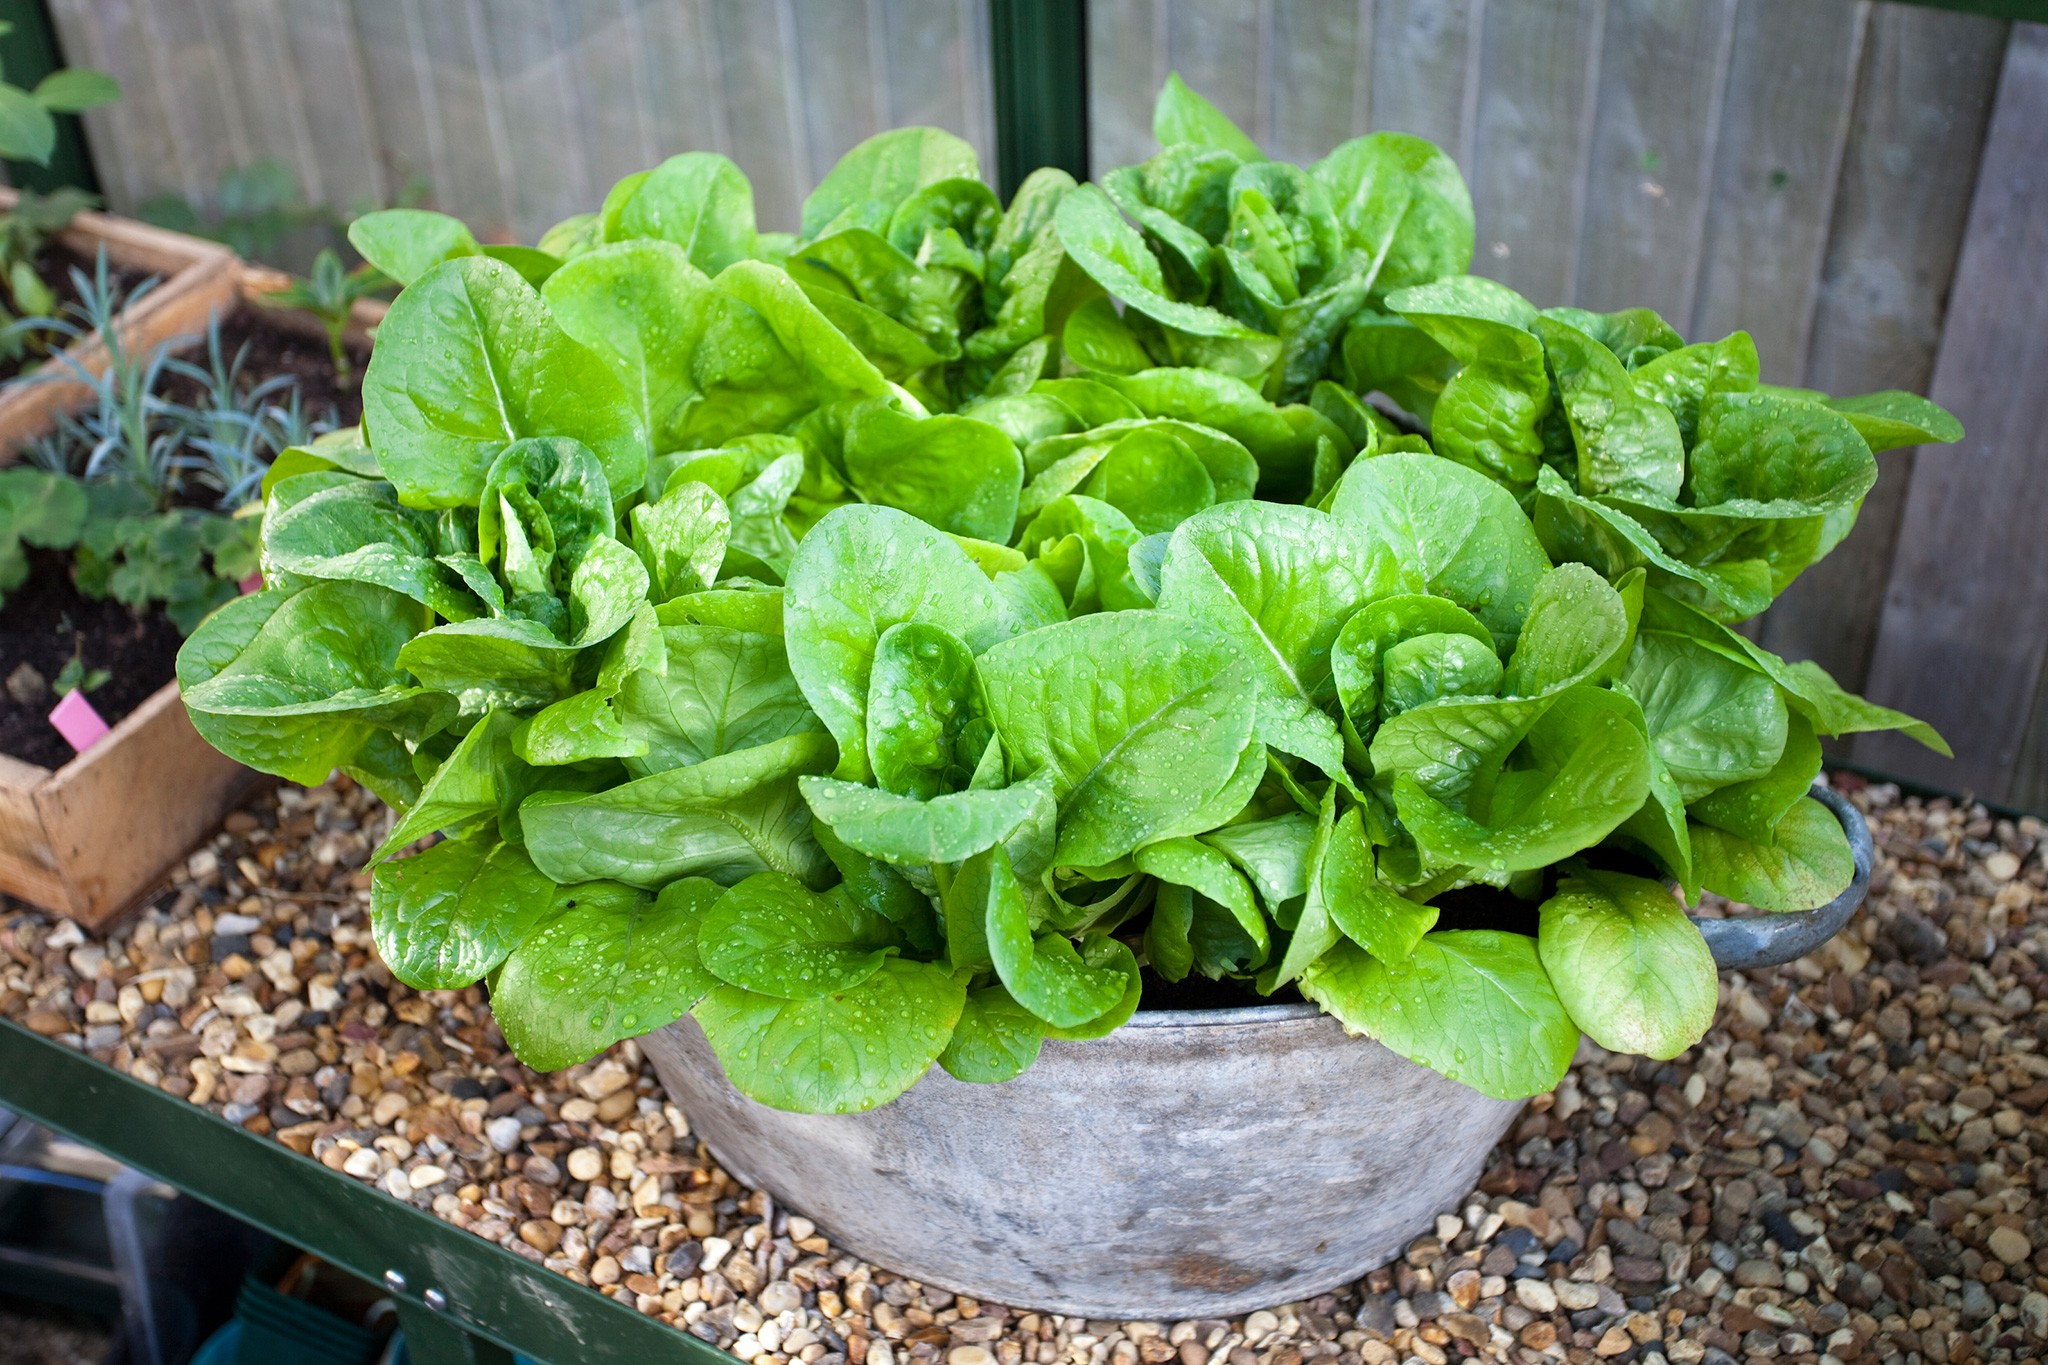 Winter gem lettuce in a container